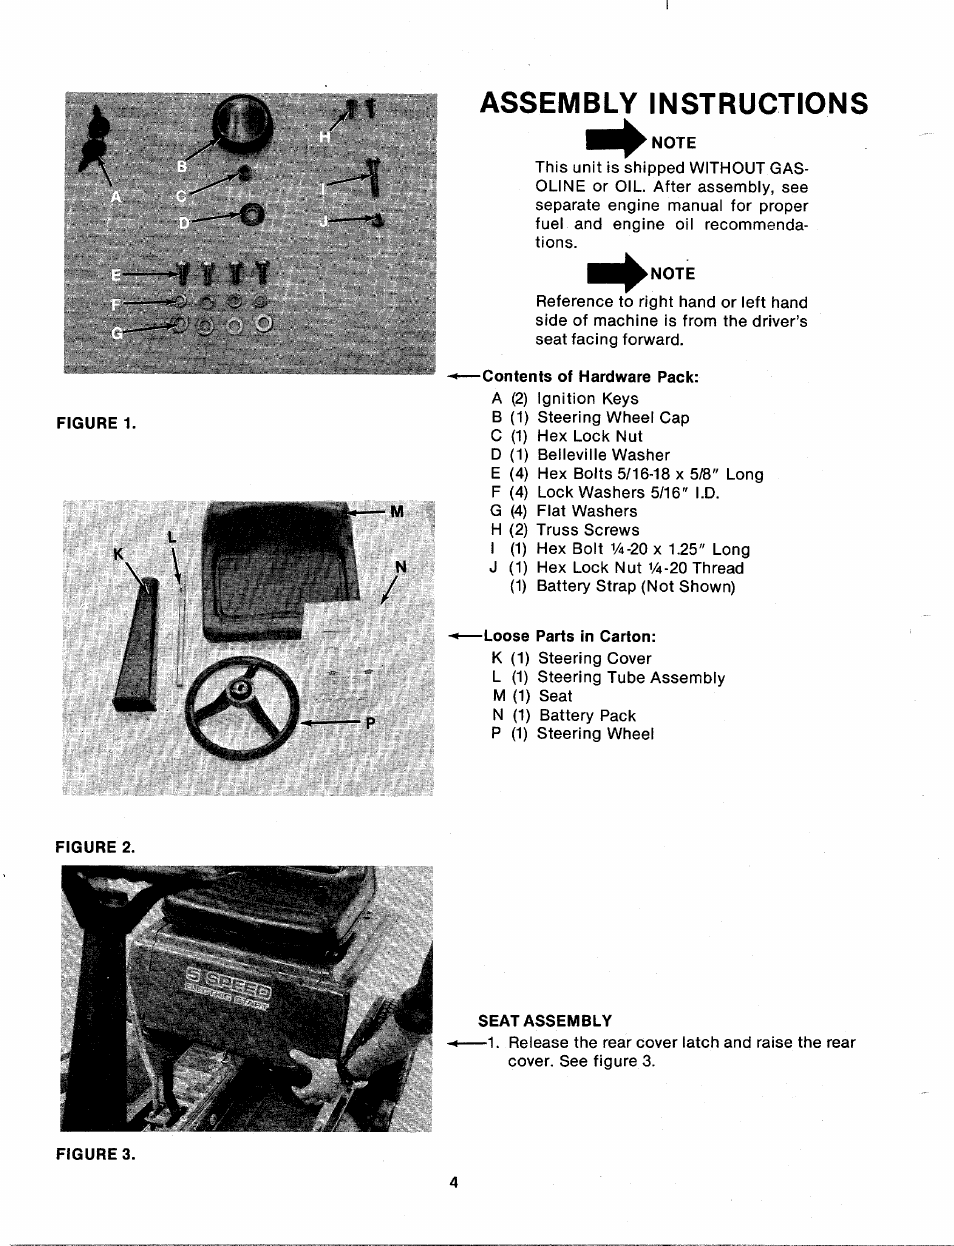 Assembly instructions, Note, Contents of hardware pack